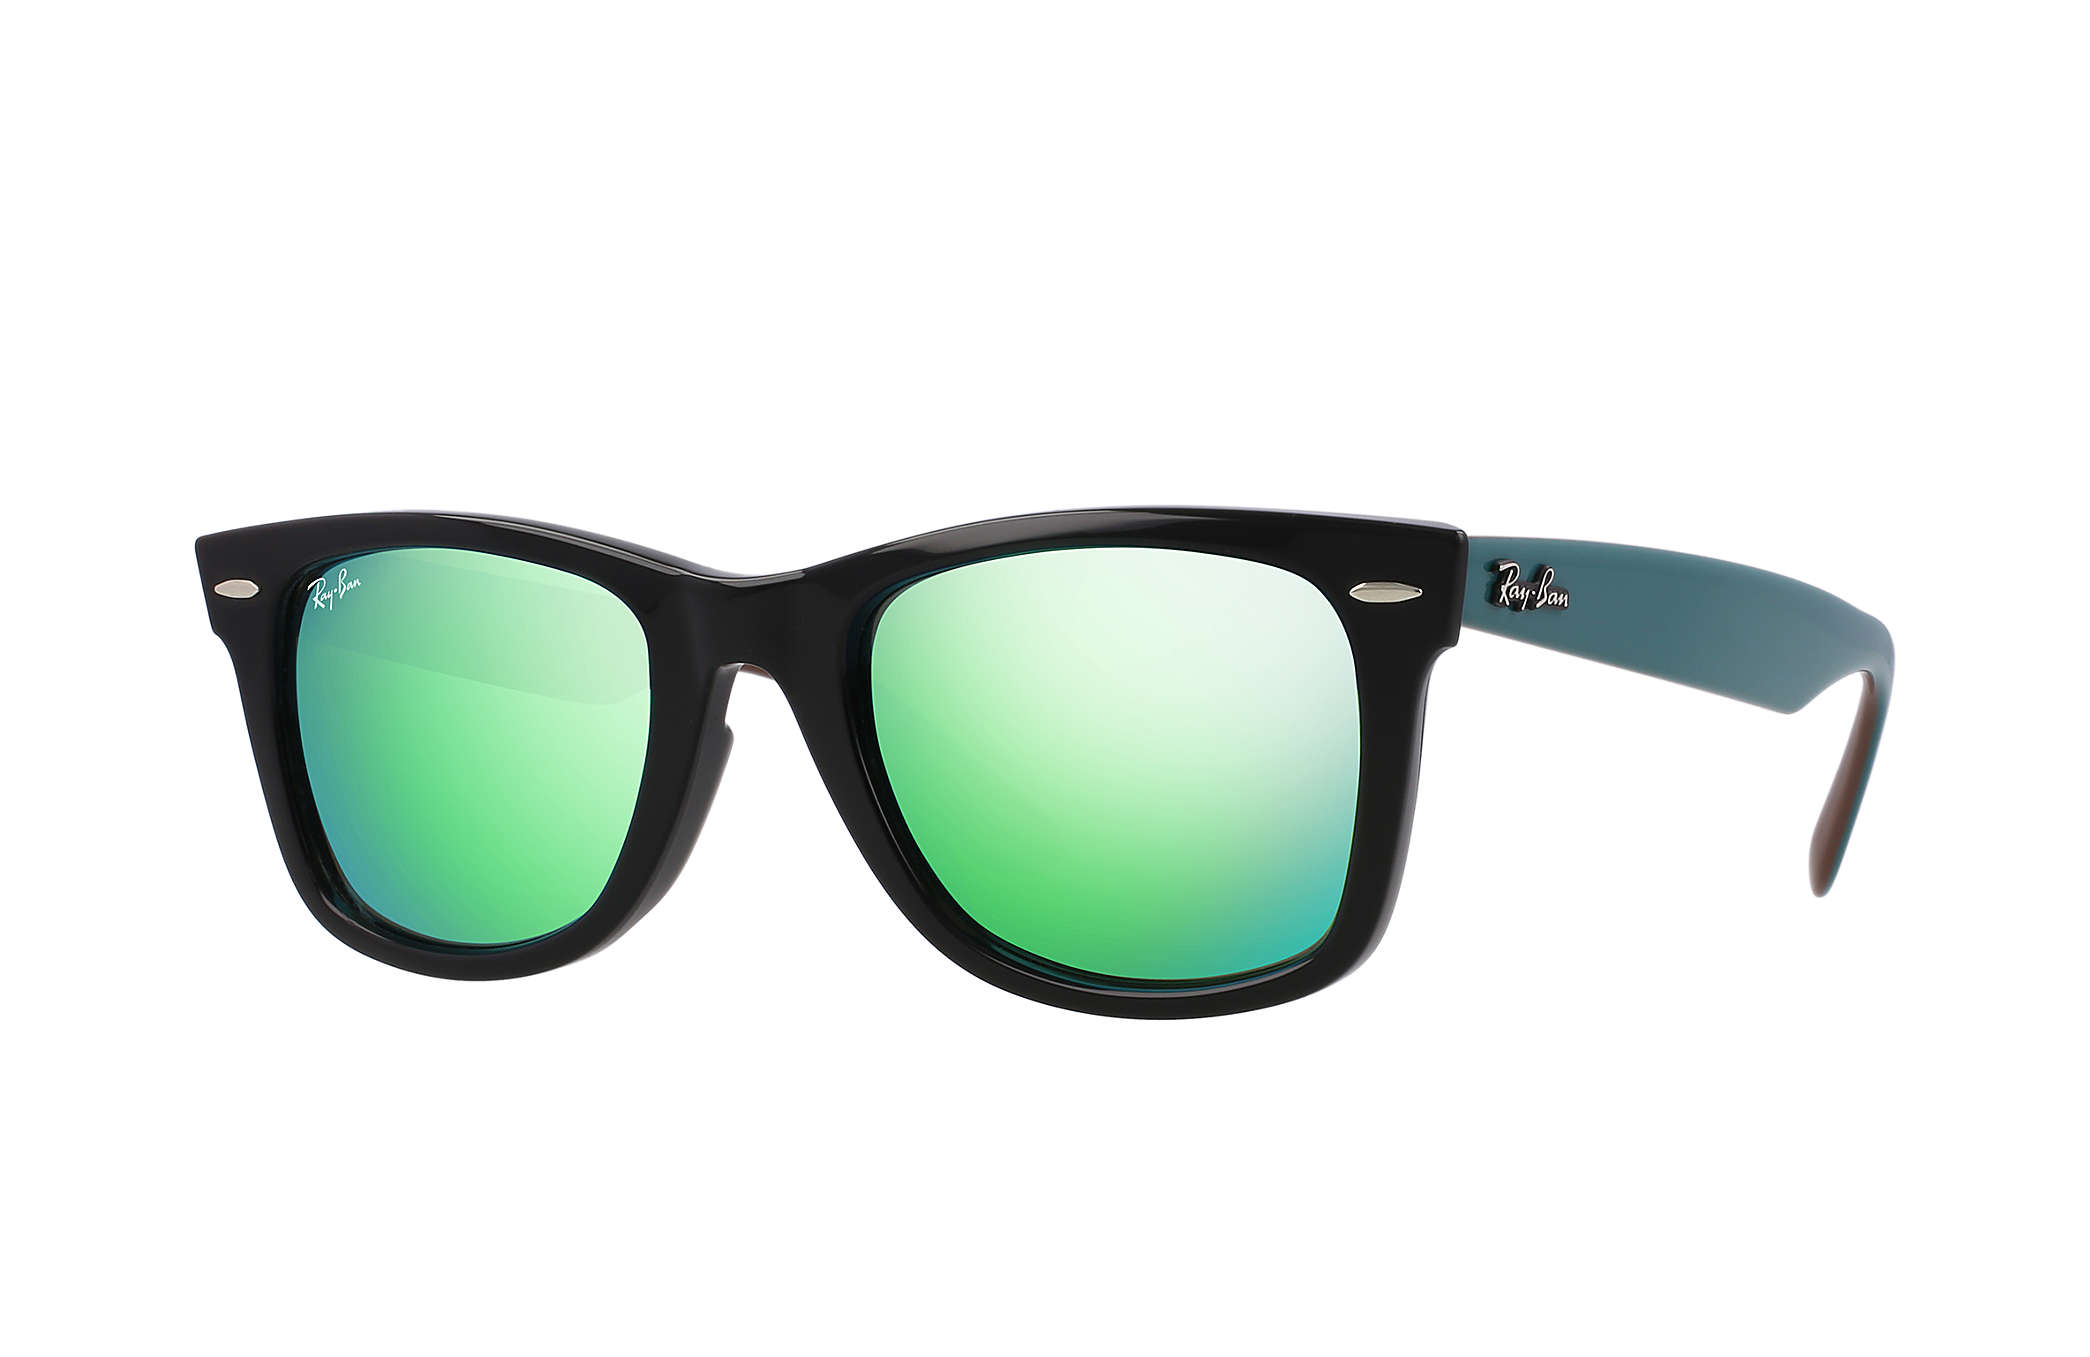 Ray-Ban Original Wayfarer Bicolor RB2140 Black - Acetate - Green ... d812dc341407